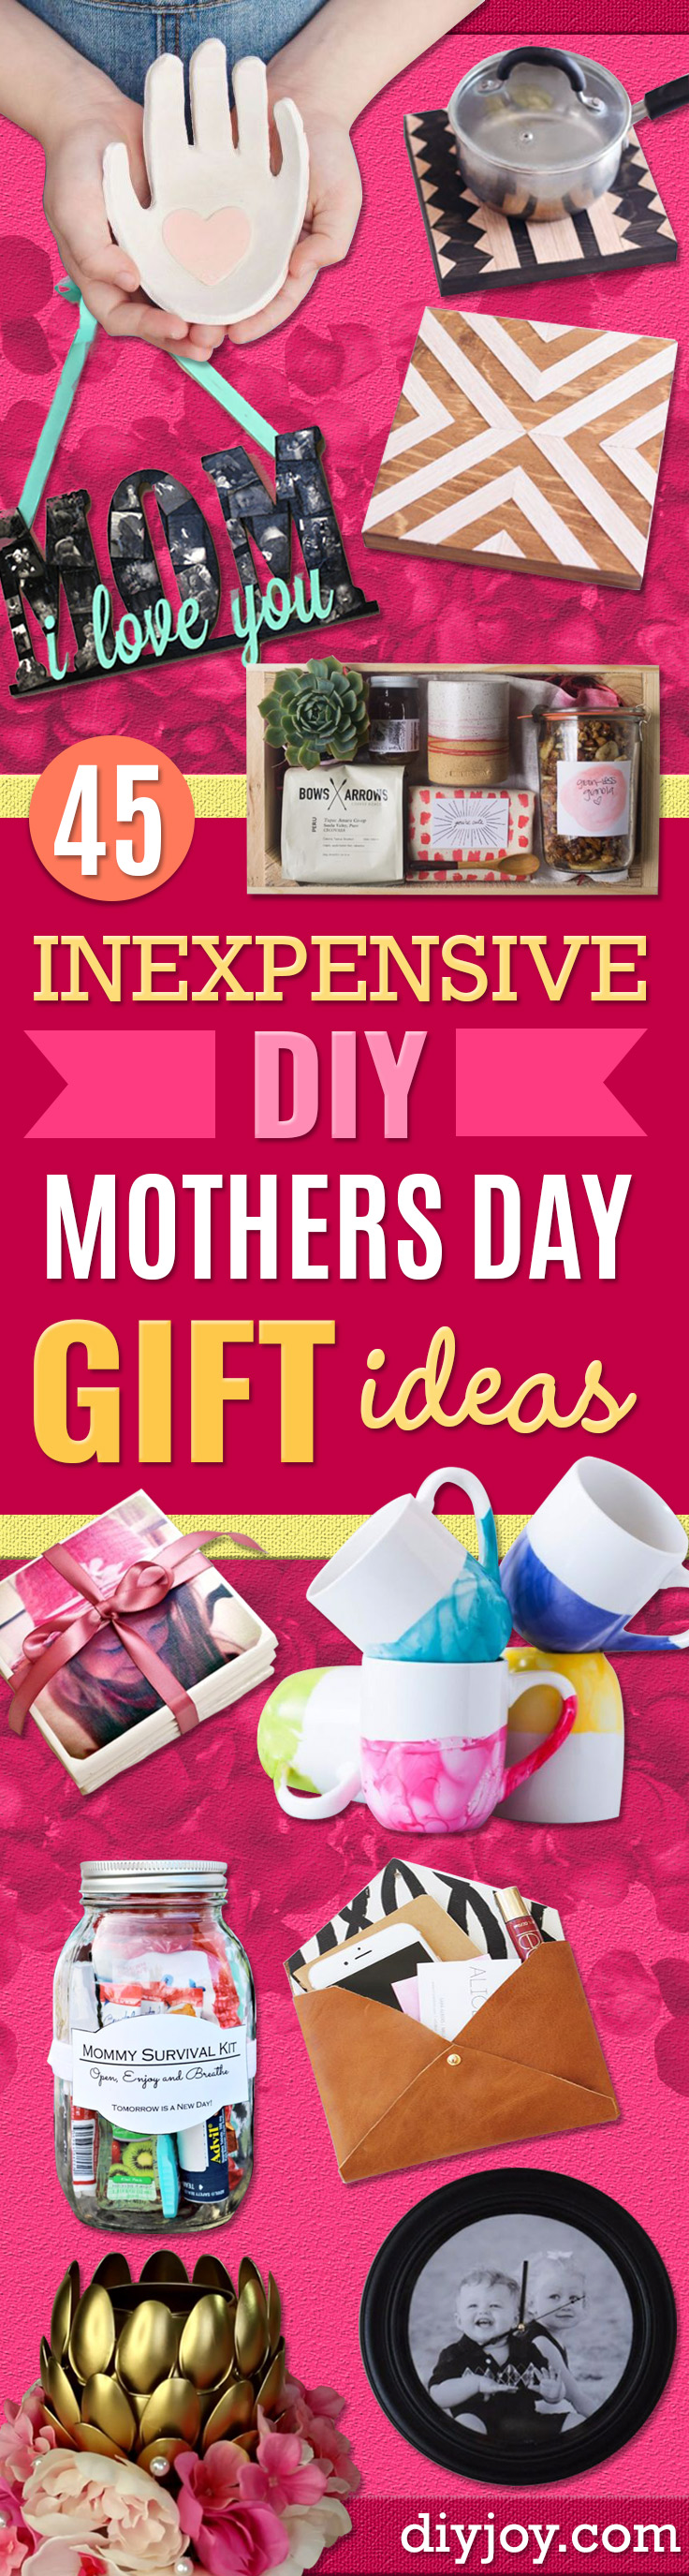 Awesome Diy Mother's Day Gifts 45 Inexpensive Diy Mothers Day Gift Ideas